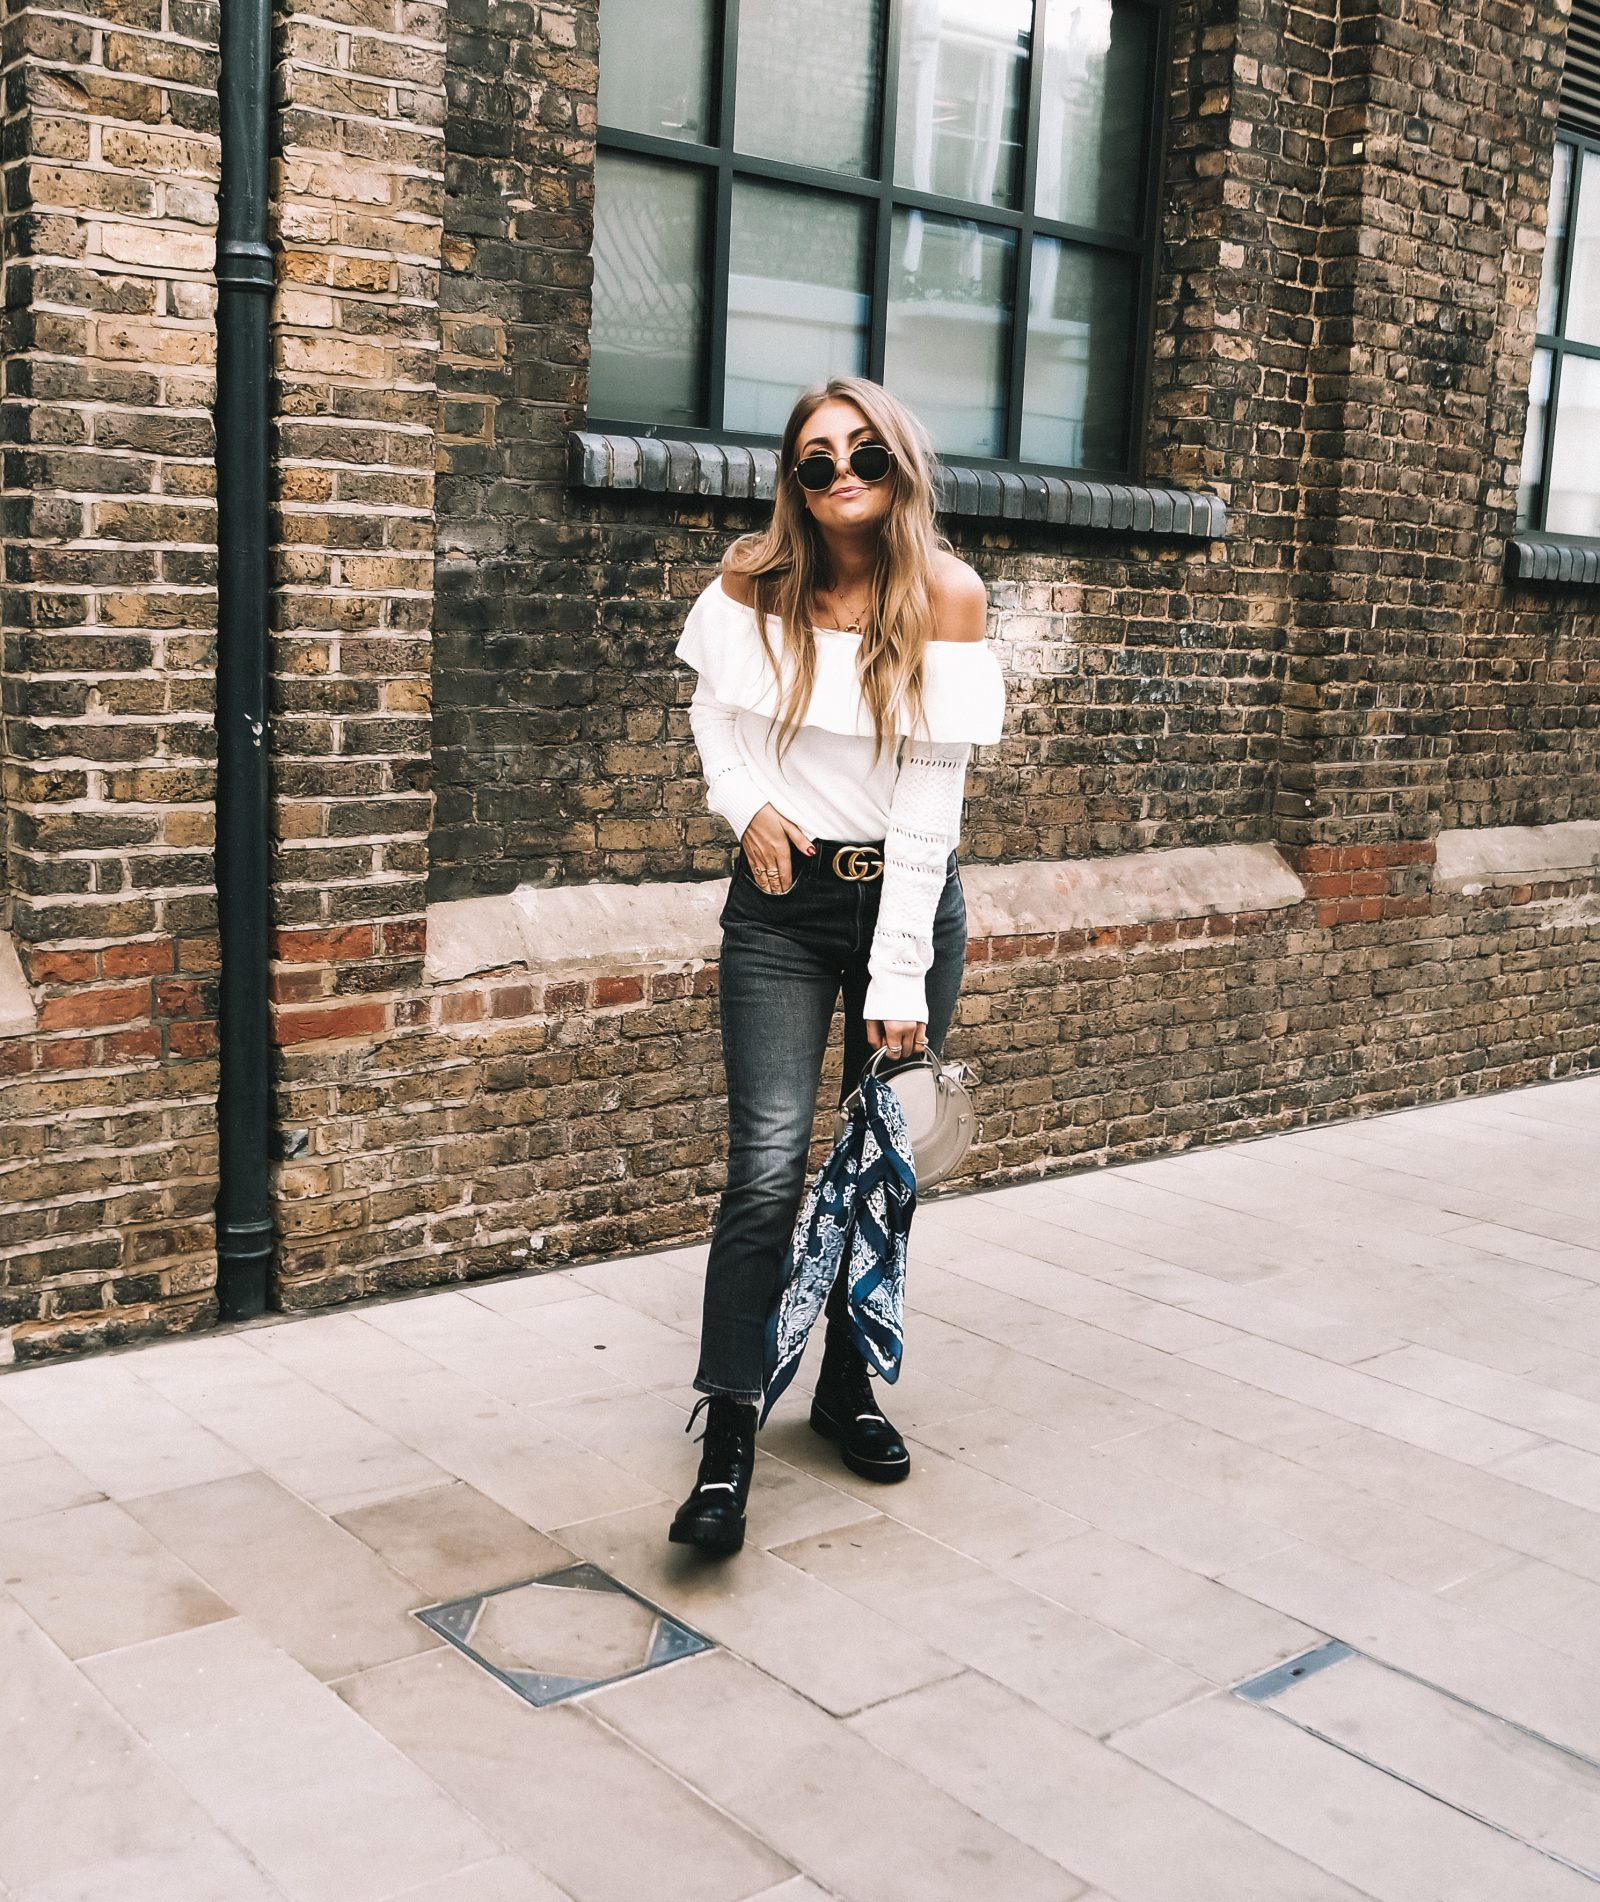 Moving To London - Lulus Outfit - Sinead Crowe